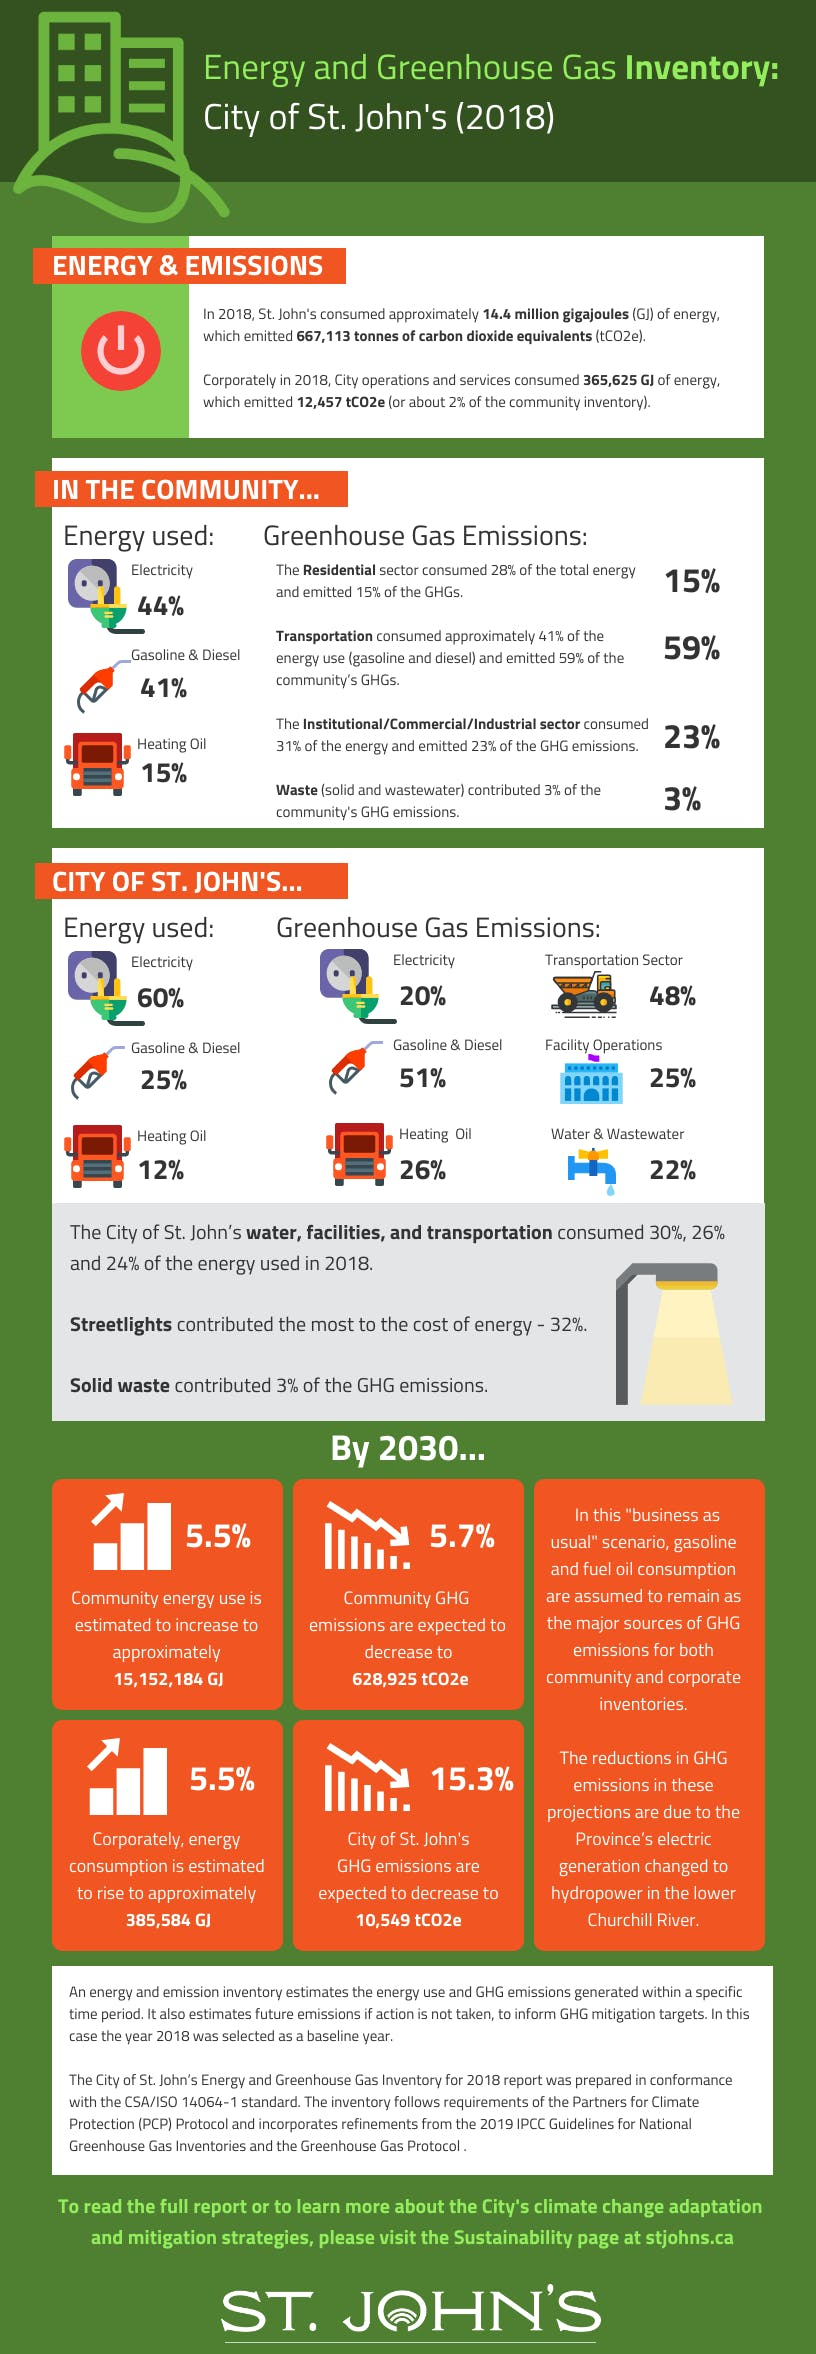 Energy and Greenhouse Gas Inventory and Projections